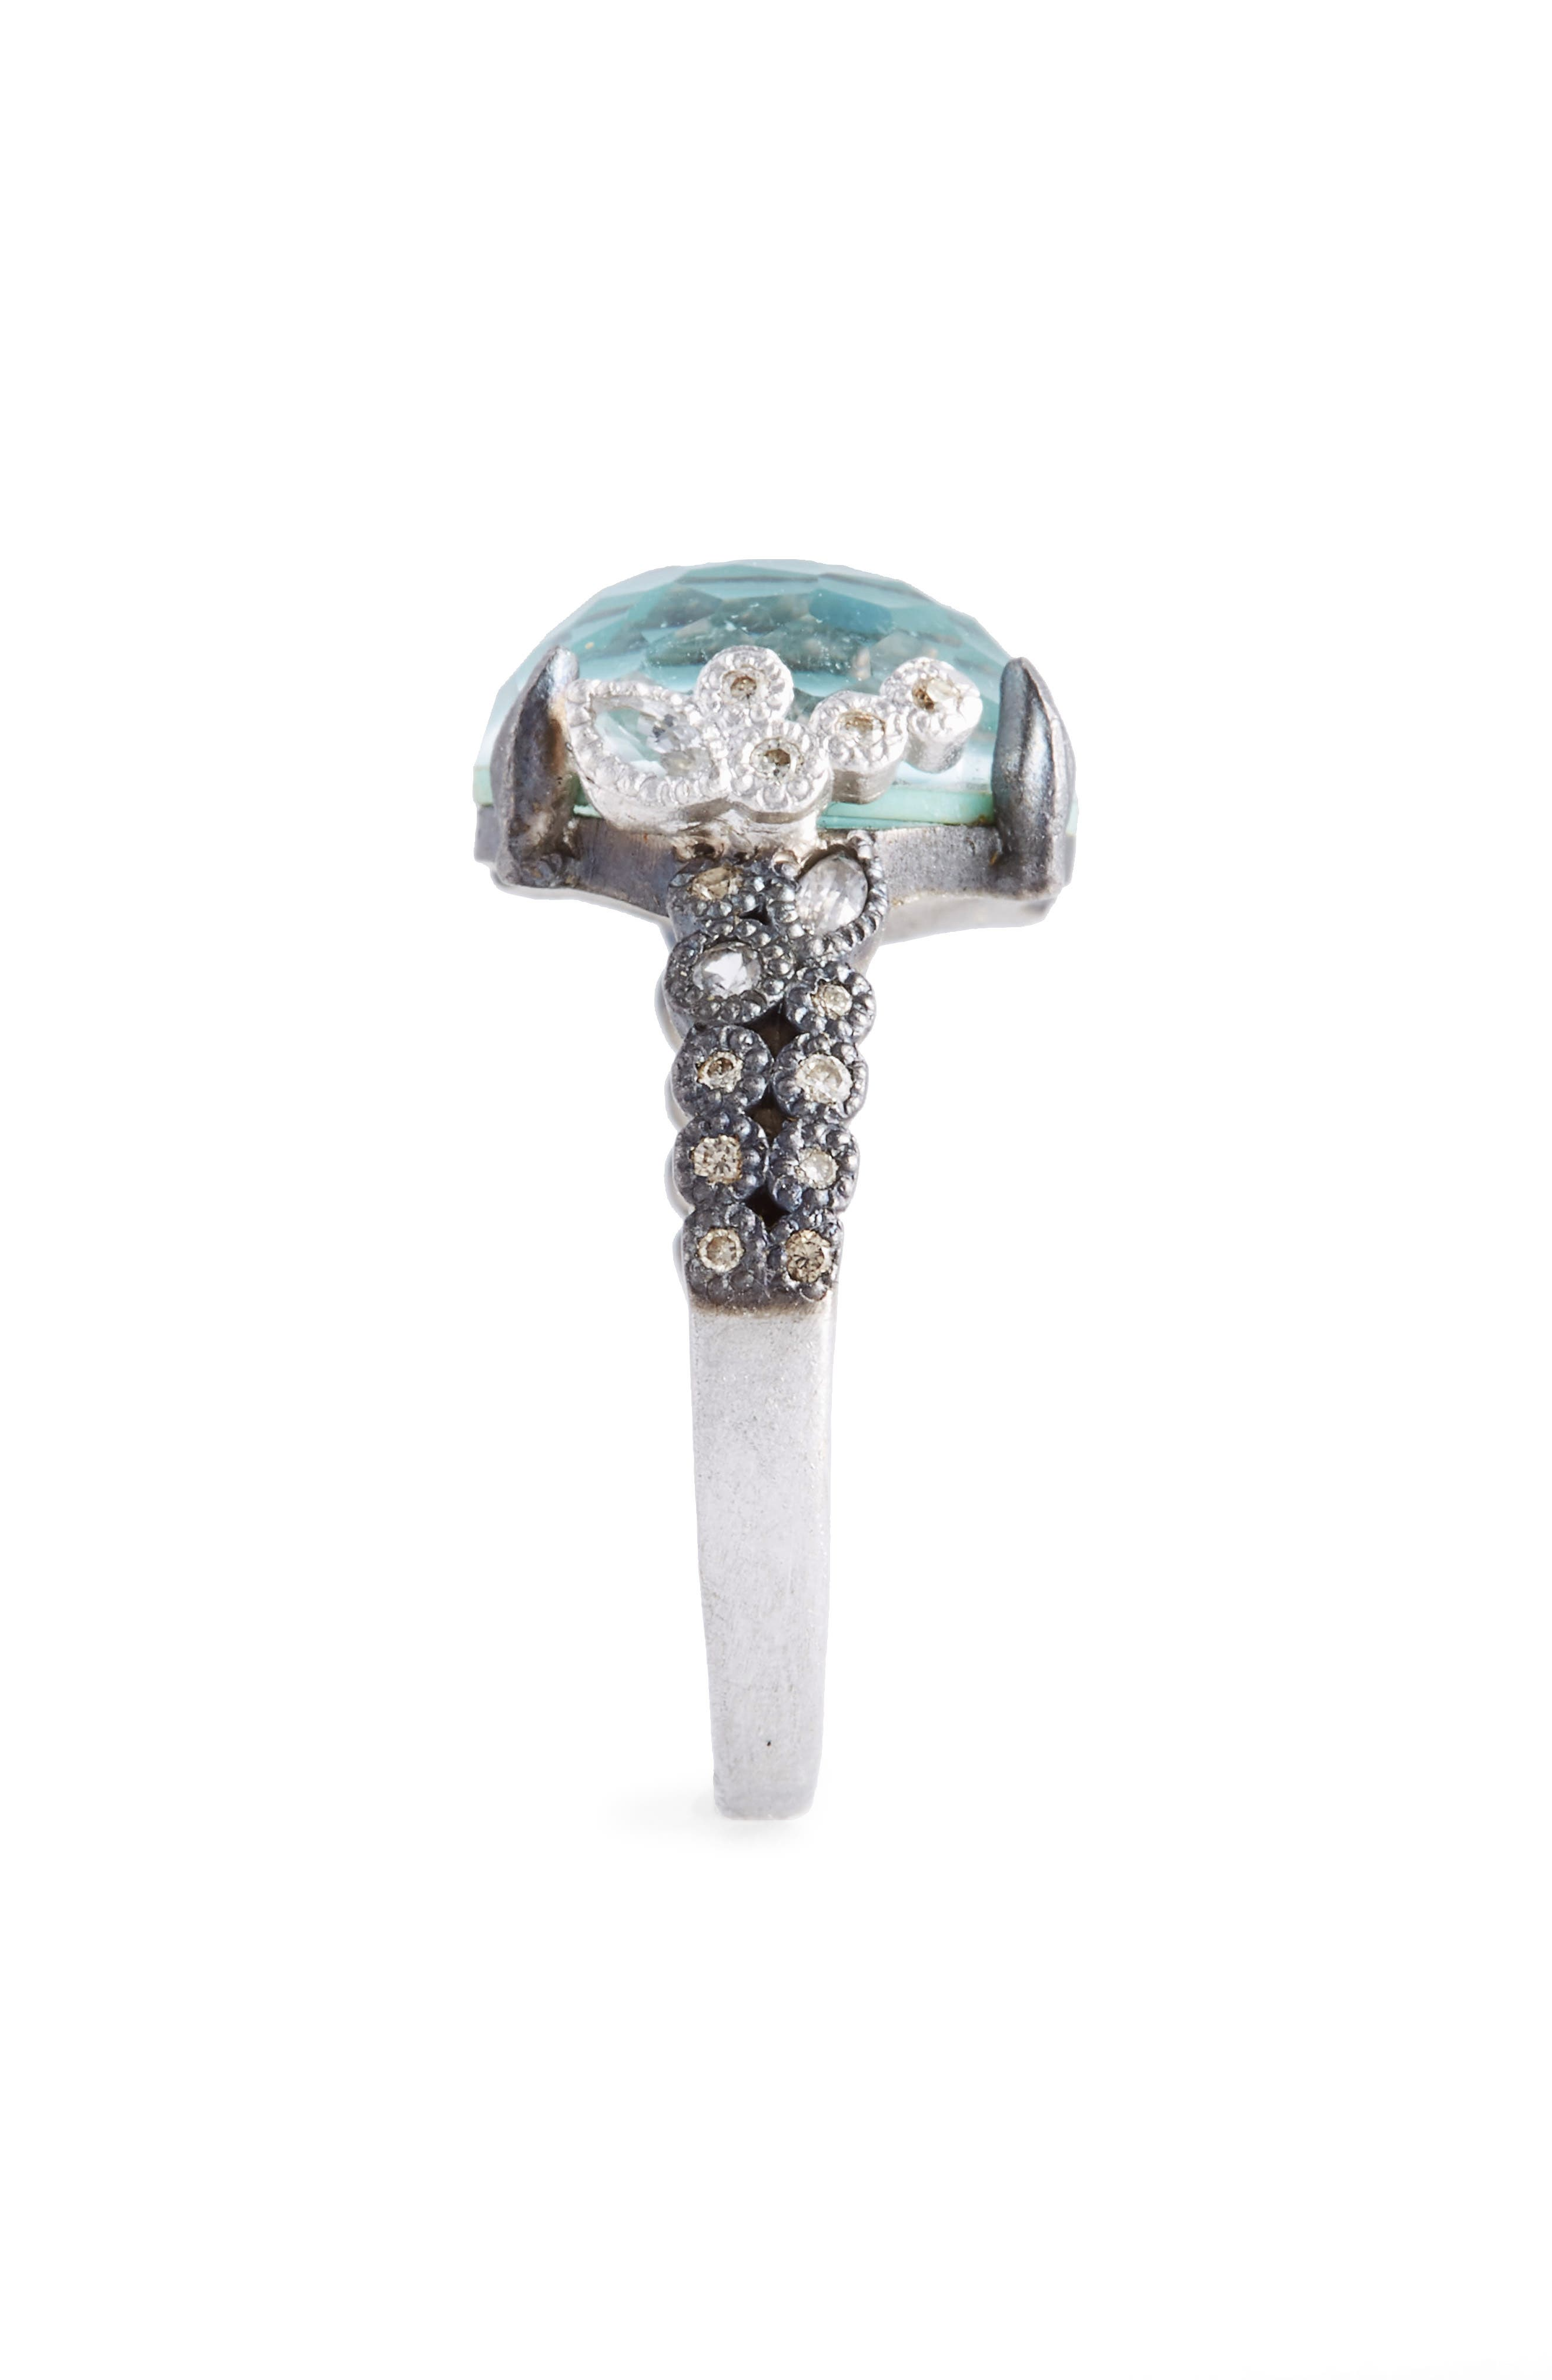 New World Crivelli Turquoise & Diamond Ring,                             Alternate thumbnail 2, color,                             SILVER/ TURQUOISE